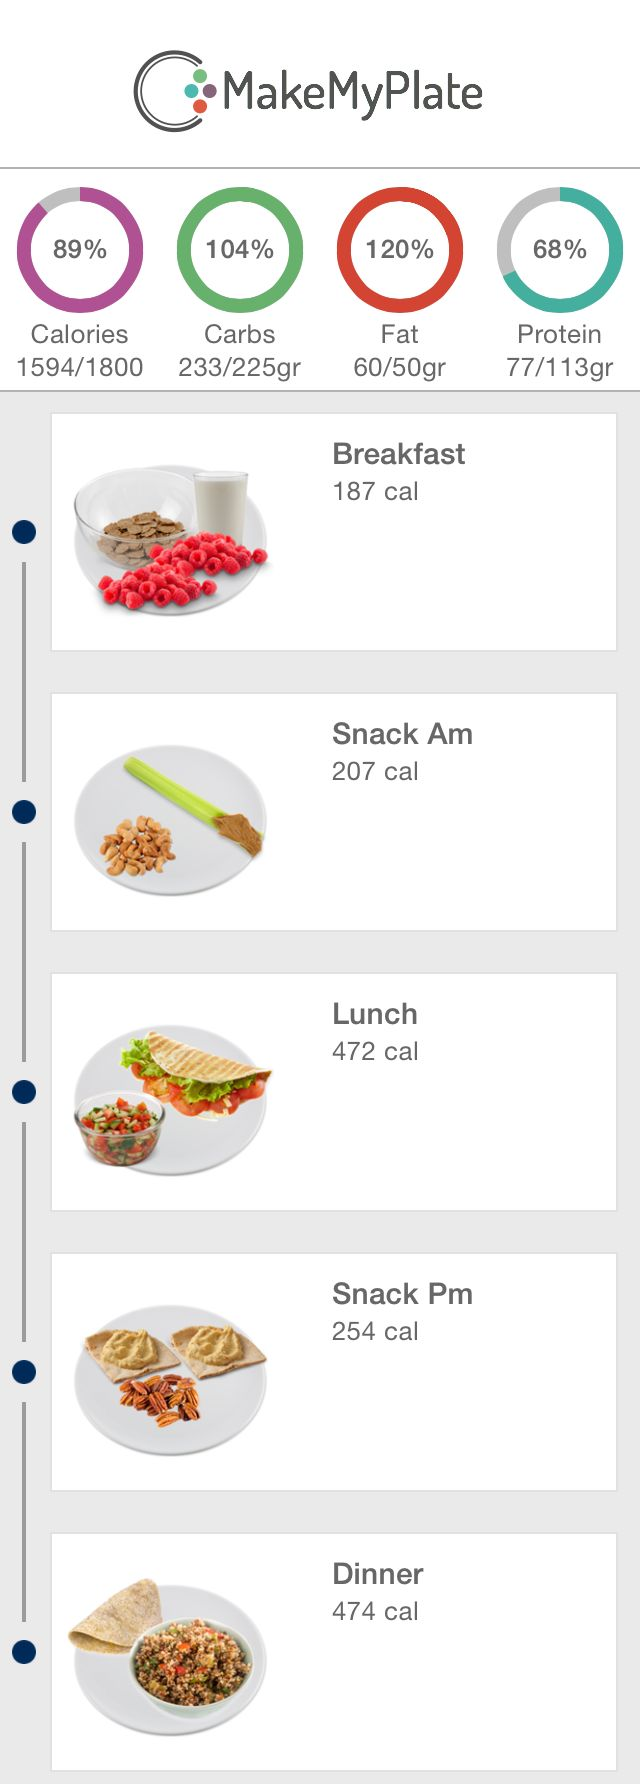 Another great day with the 1800 meal plan in the MakeMyPlate app!